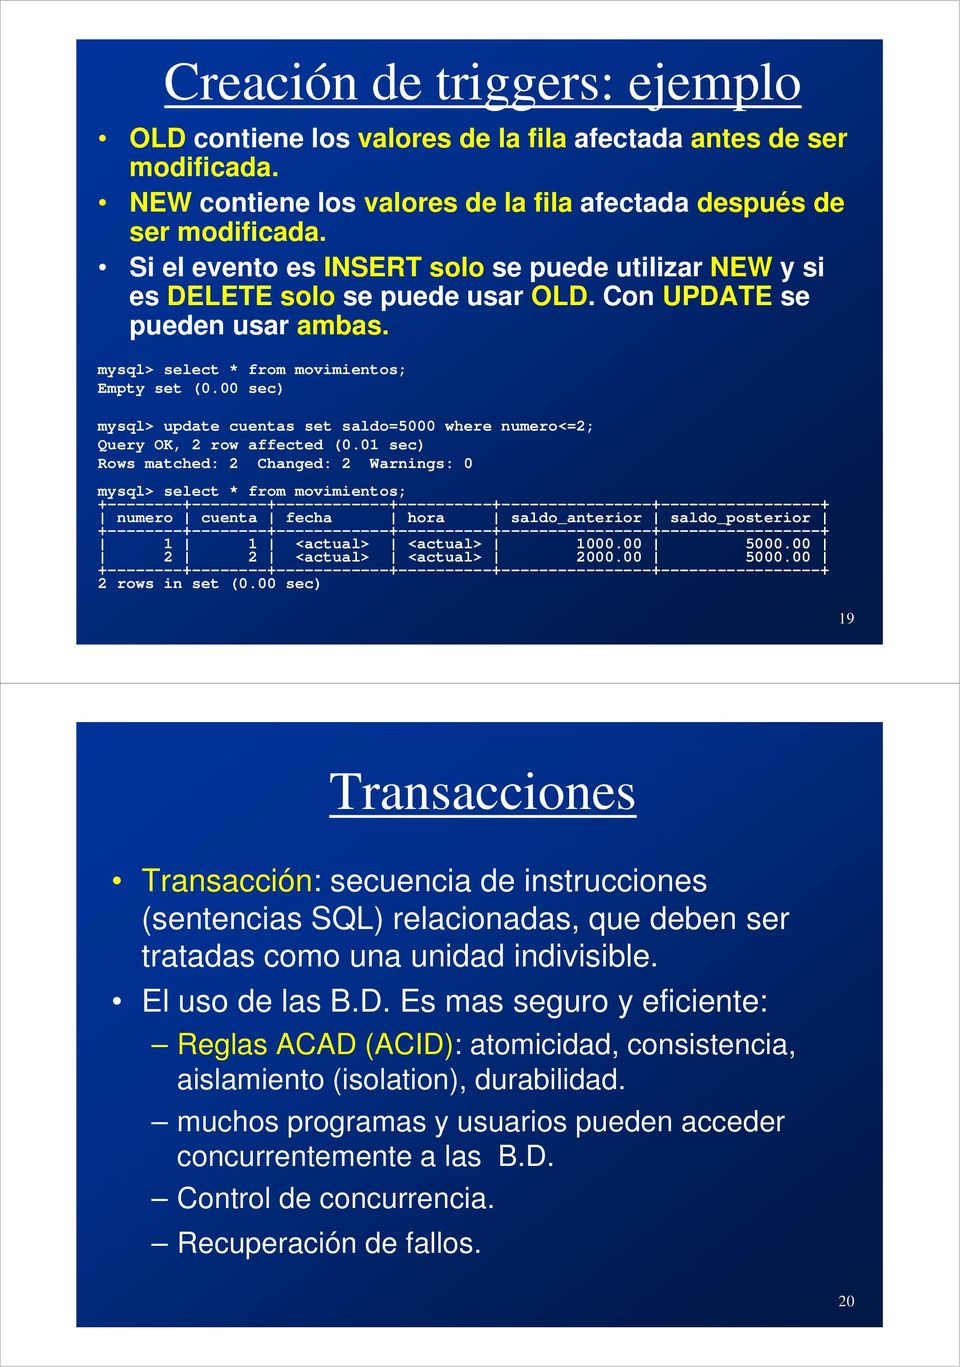 00 sec) mysql> update cuentas set saldo=5000 where numero<=2; Query OK, 2 row affected (0.